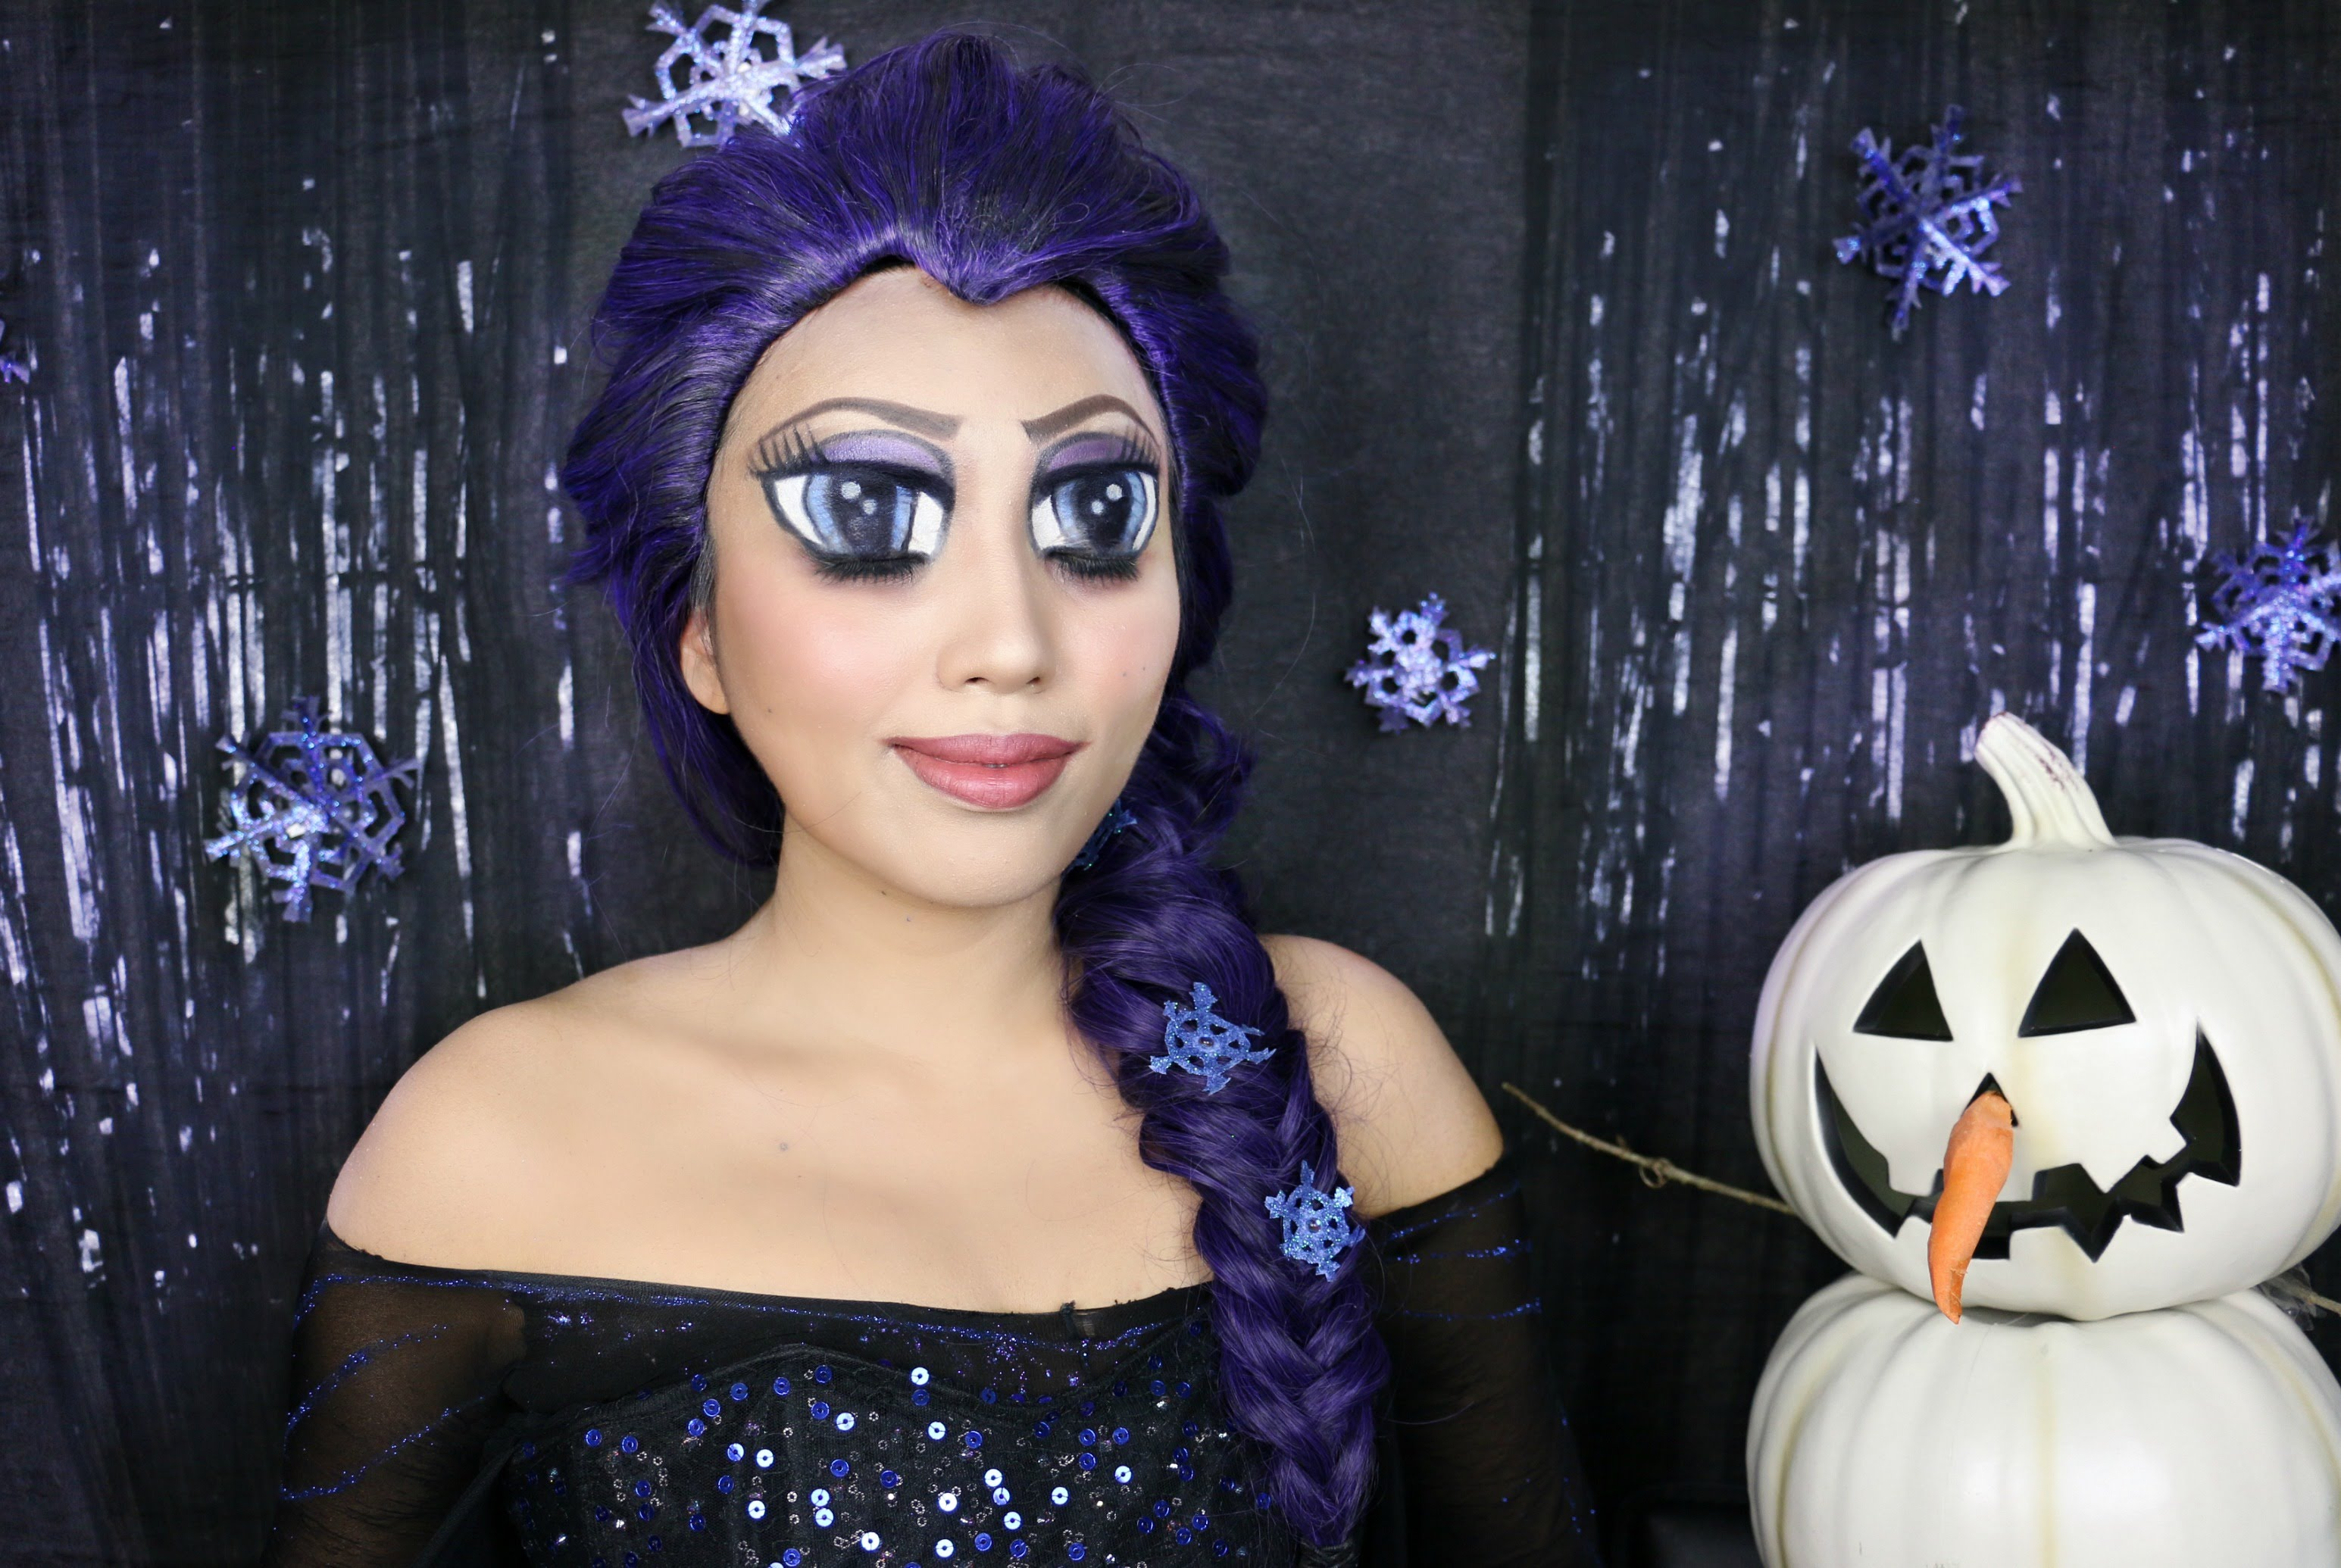 A tutorial showing how to make anime big eyes using makeup to look a tutorial showing how to make anime big eyes using makeup to look like elsa from frozen baditri Choice Image